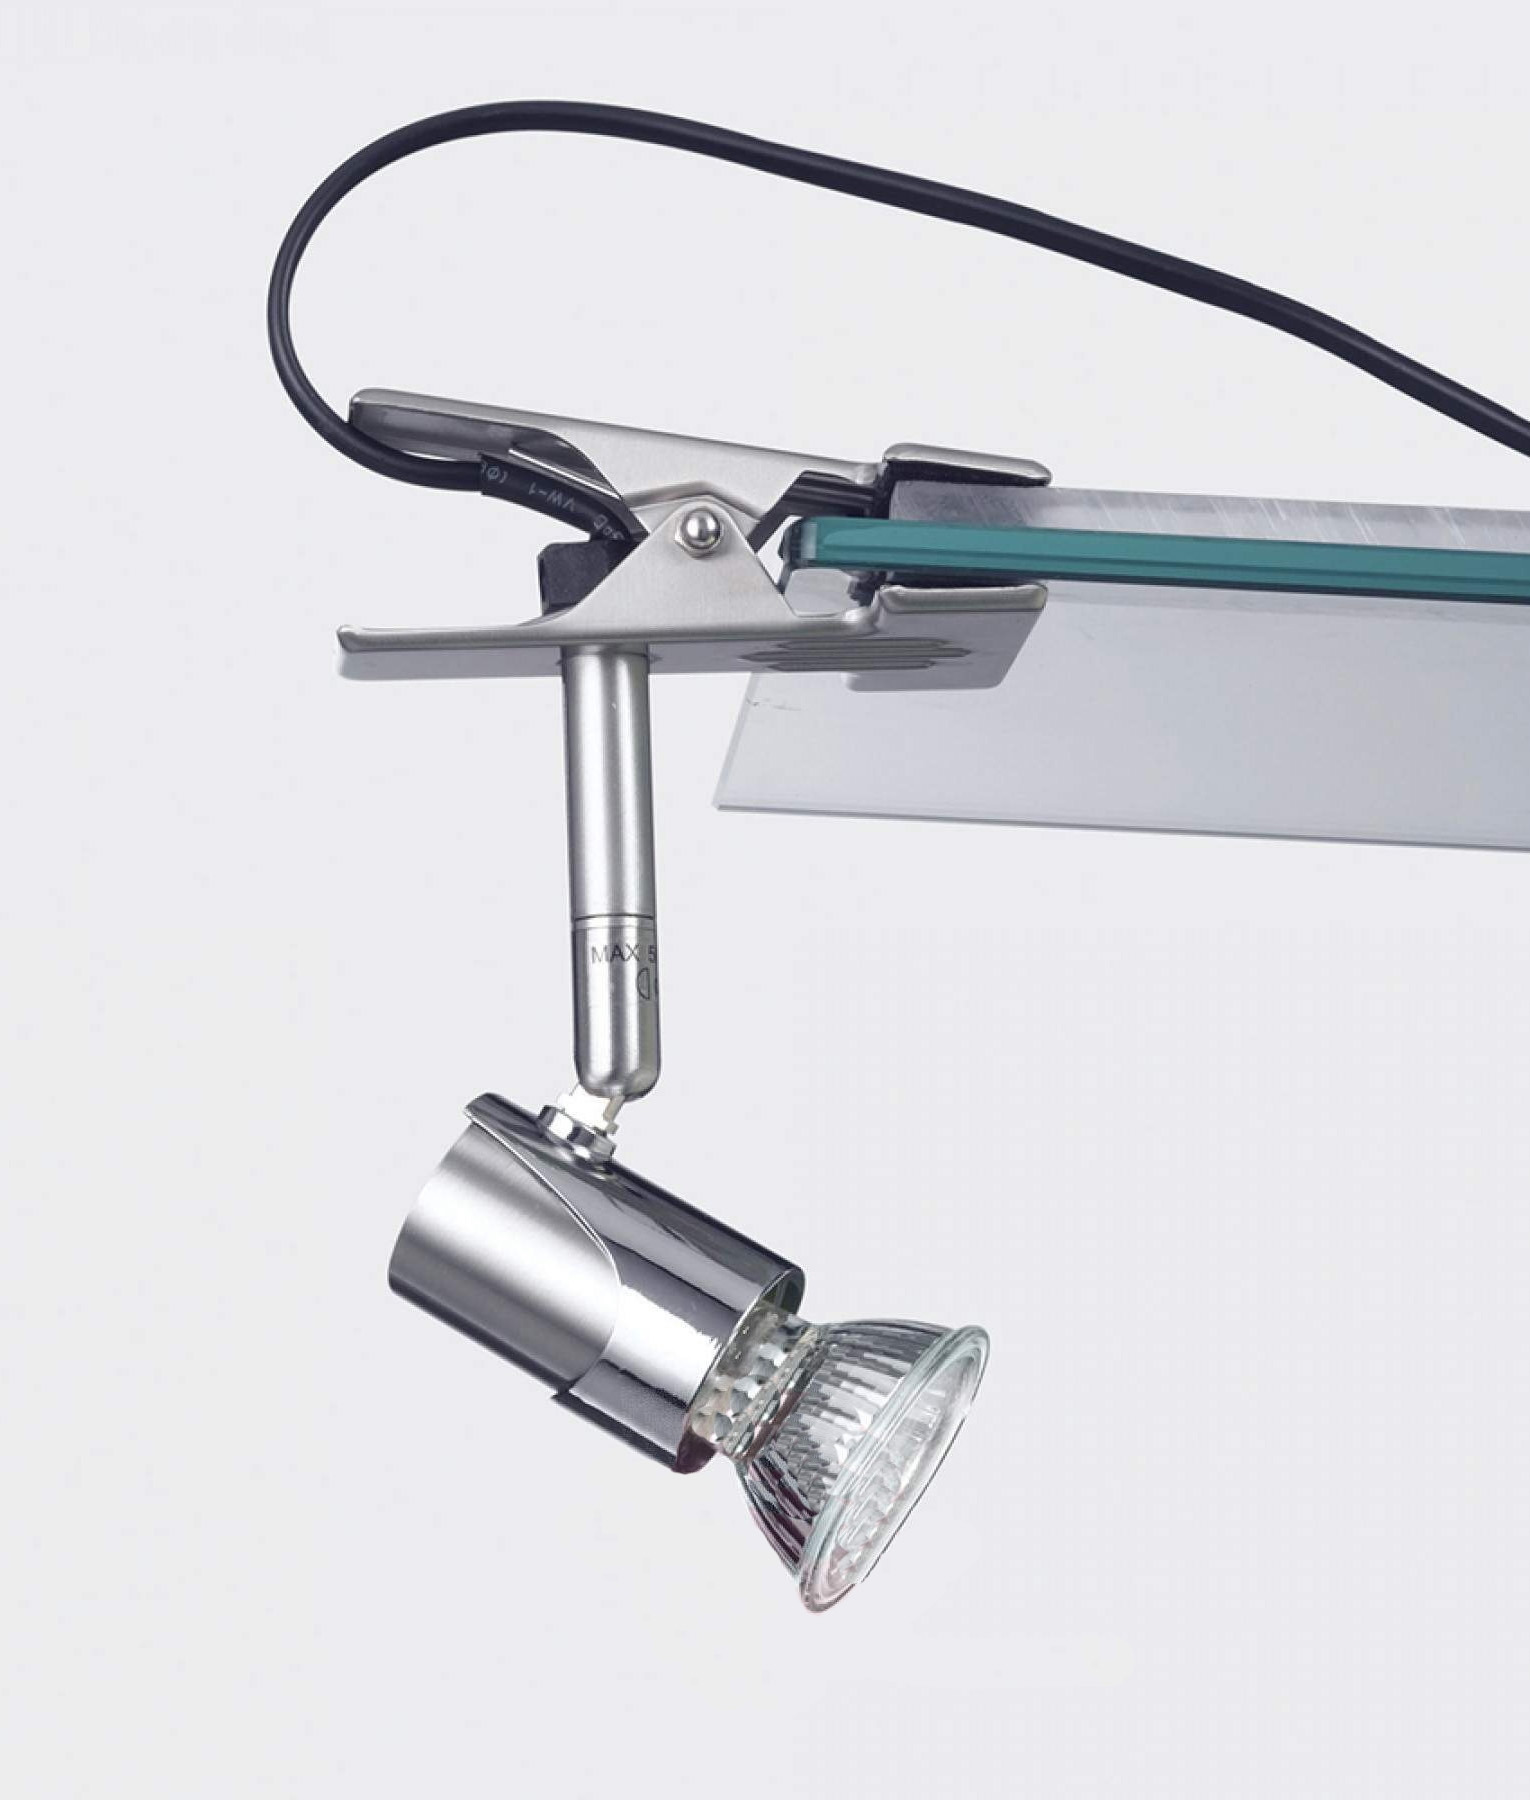 clamps lighting light stone carry cdk carrier products clamp diarex